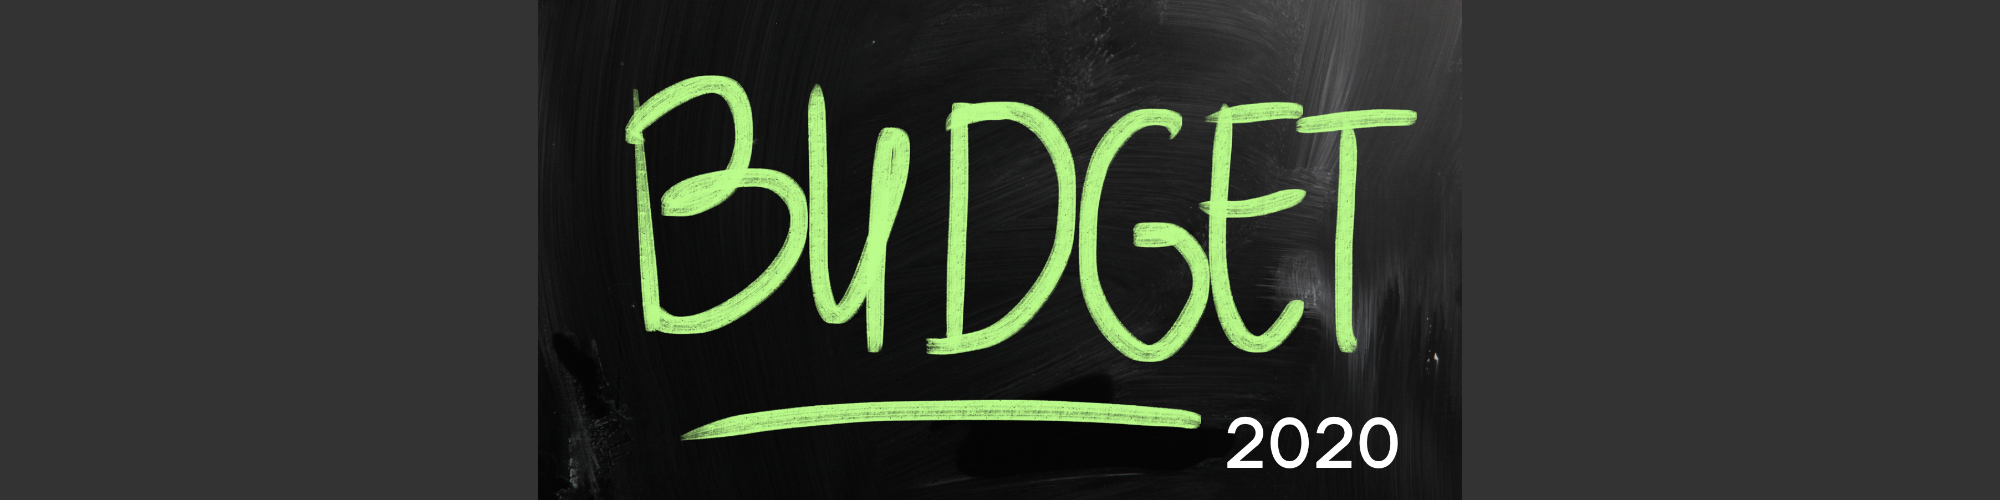 2021 Federal Budget | How it backs your business to rebuild